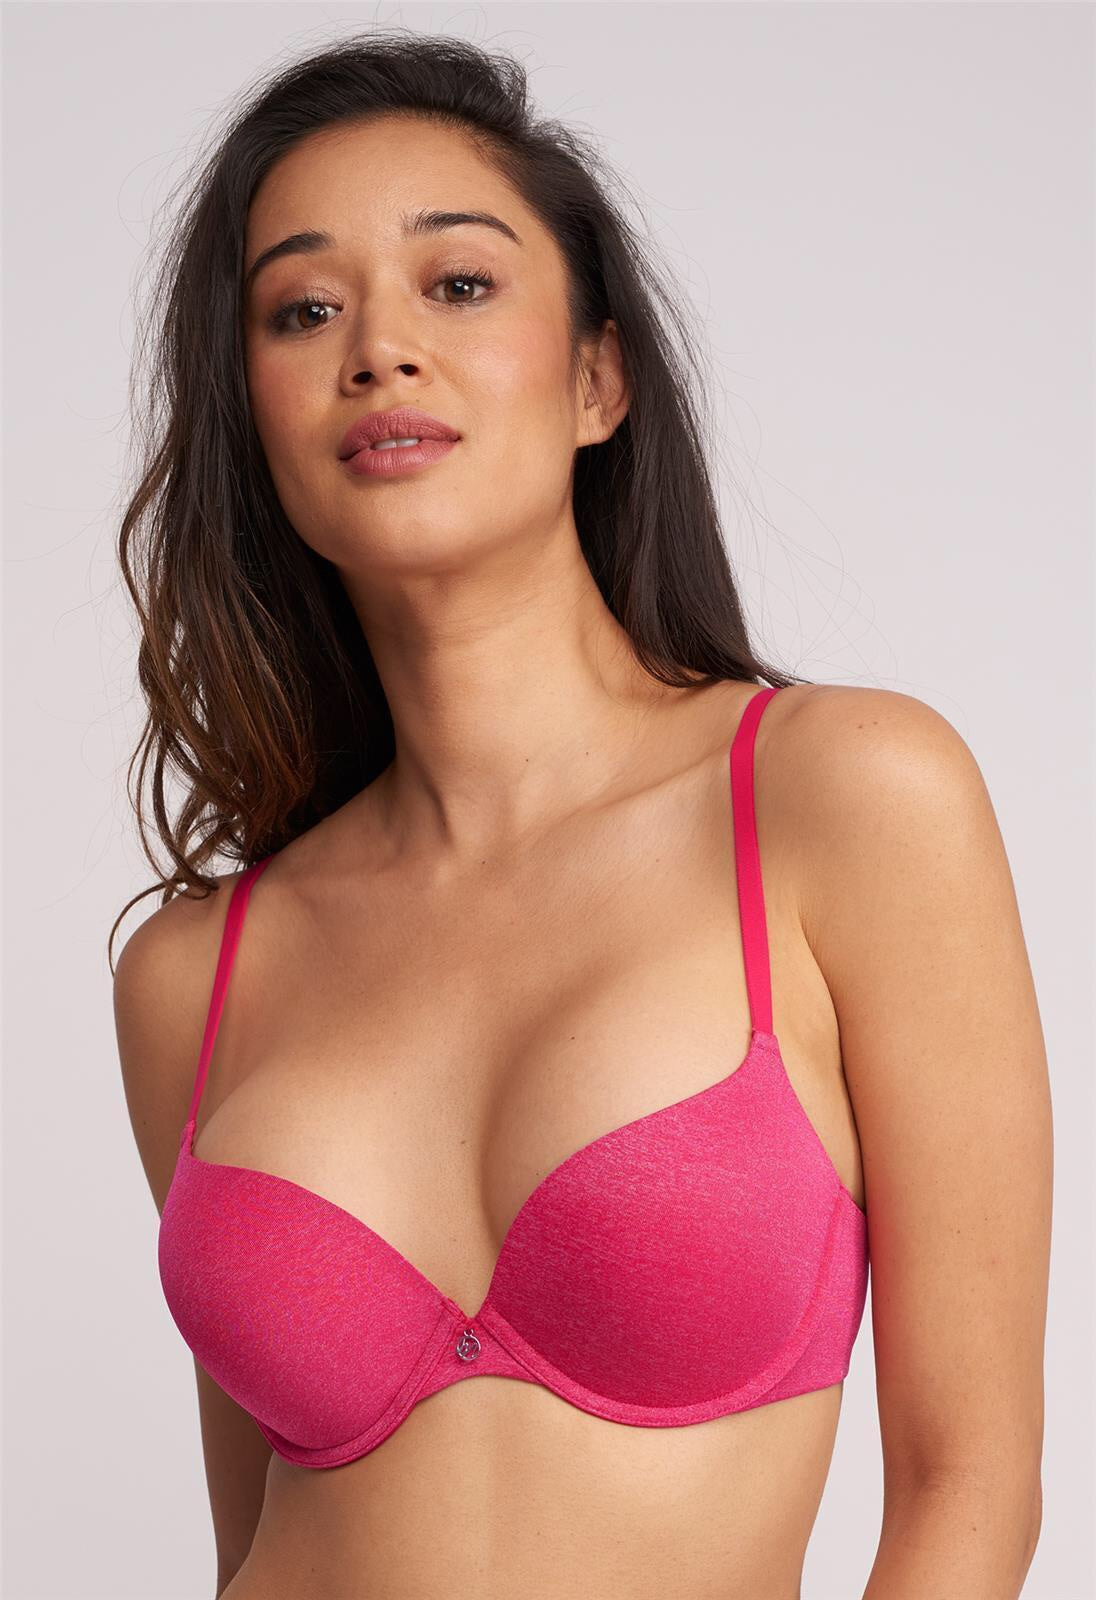 MONTELLE 9316 ALLURE LIGHT PUSH-UP BRA IN DRAGONFRUIT MIX